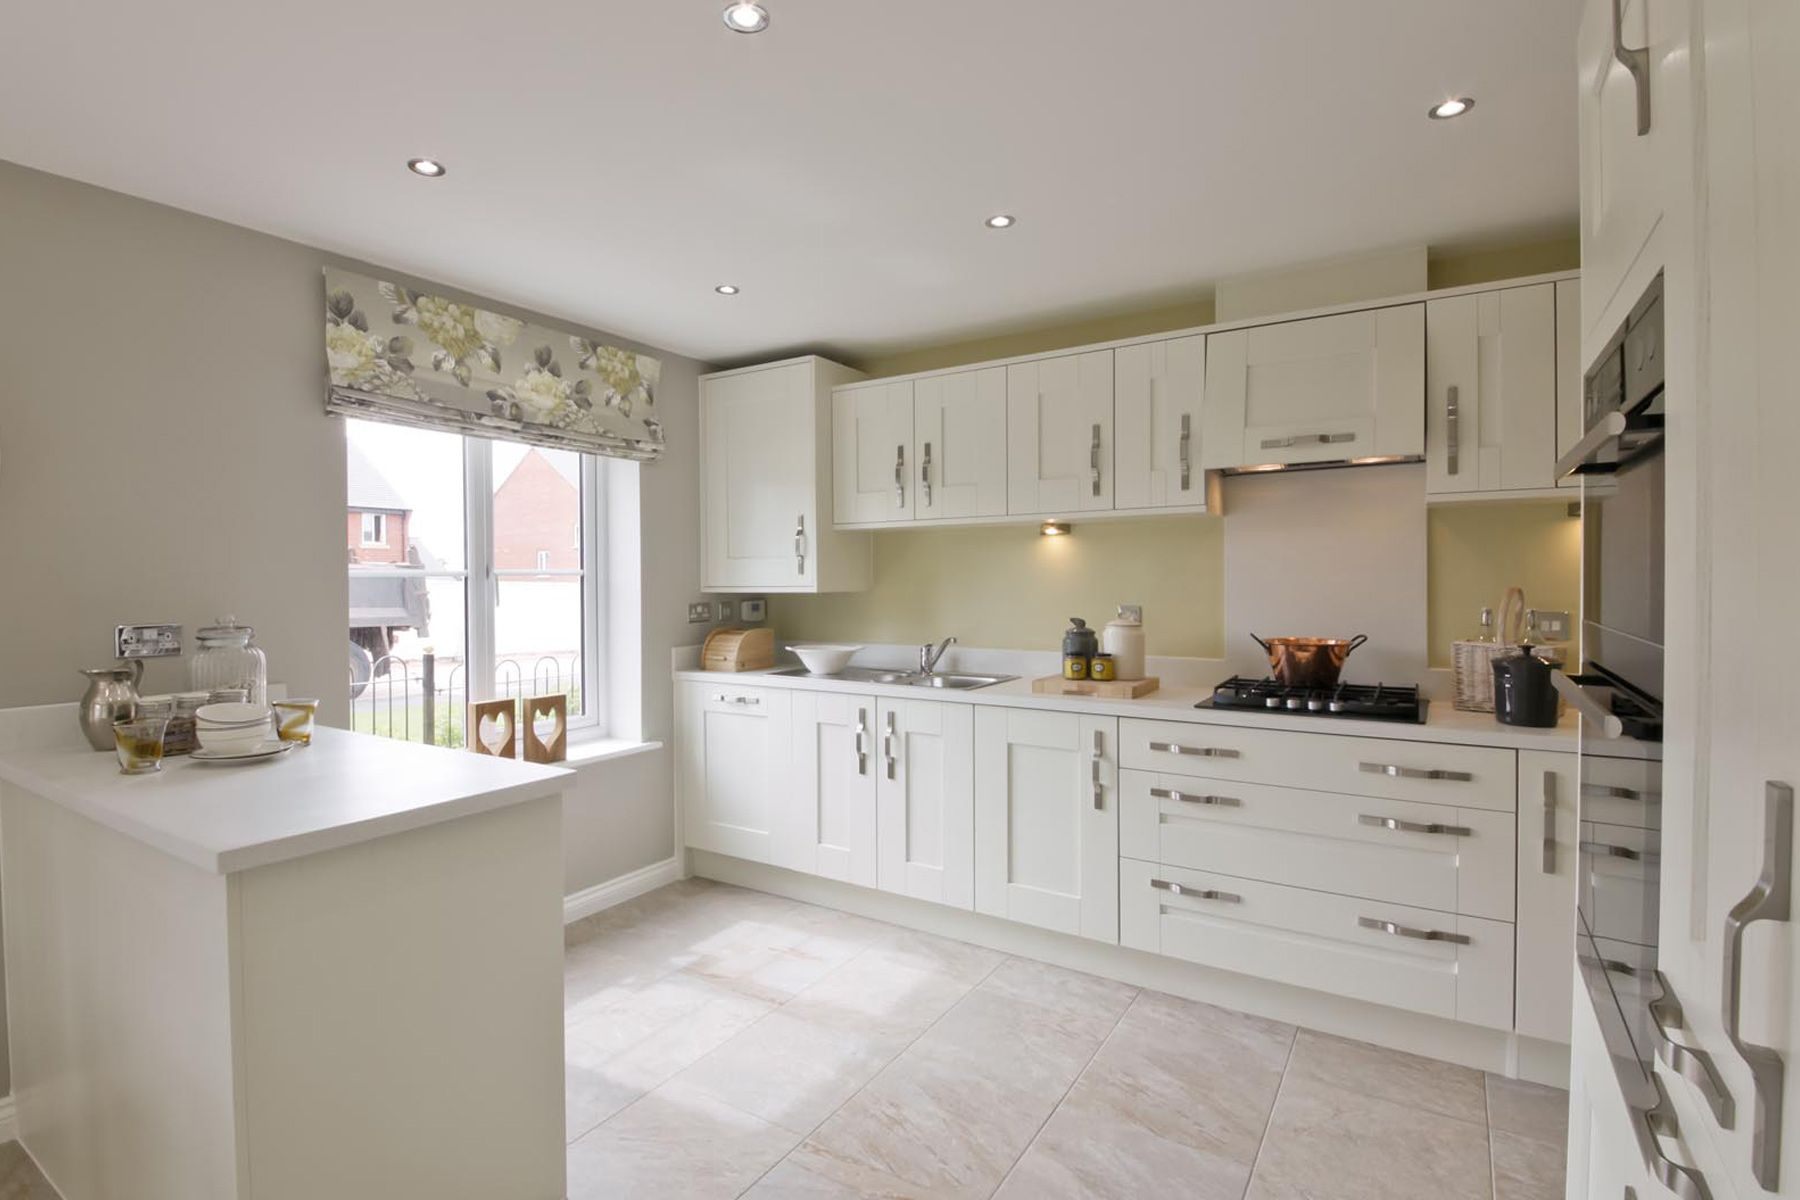 TW Exeter - Mayfield Gardens - Trsudale example kitchen